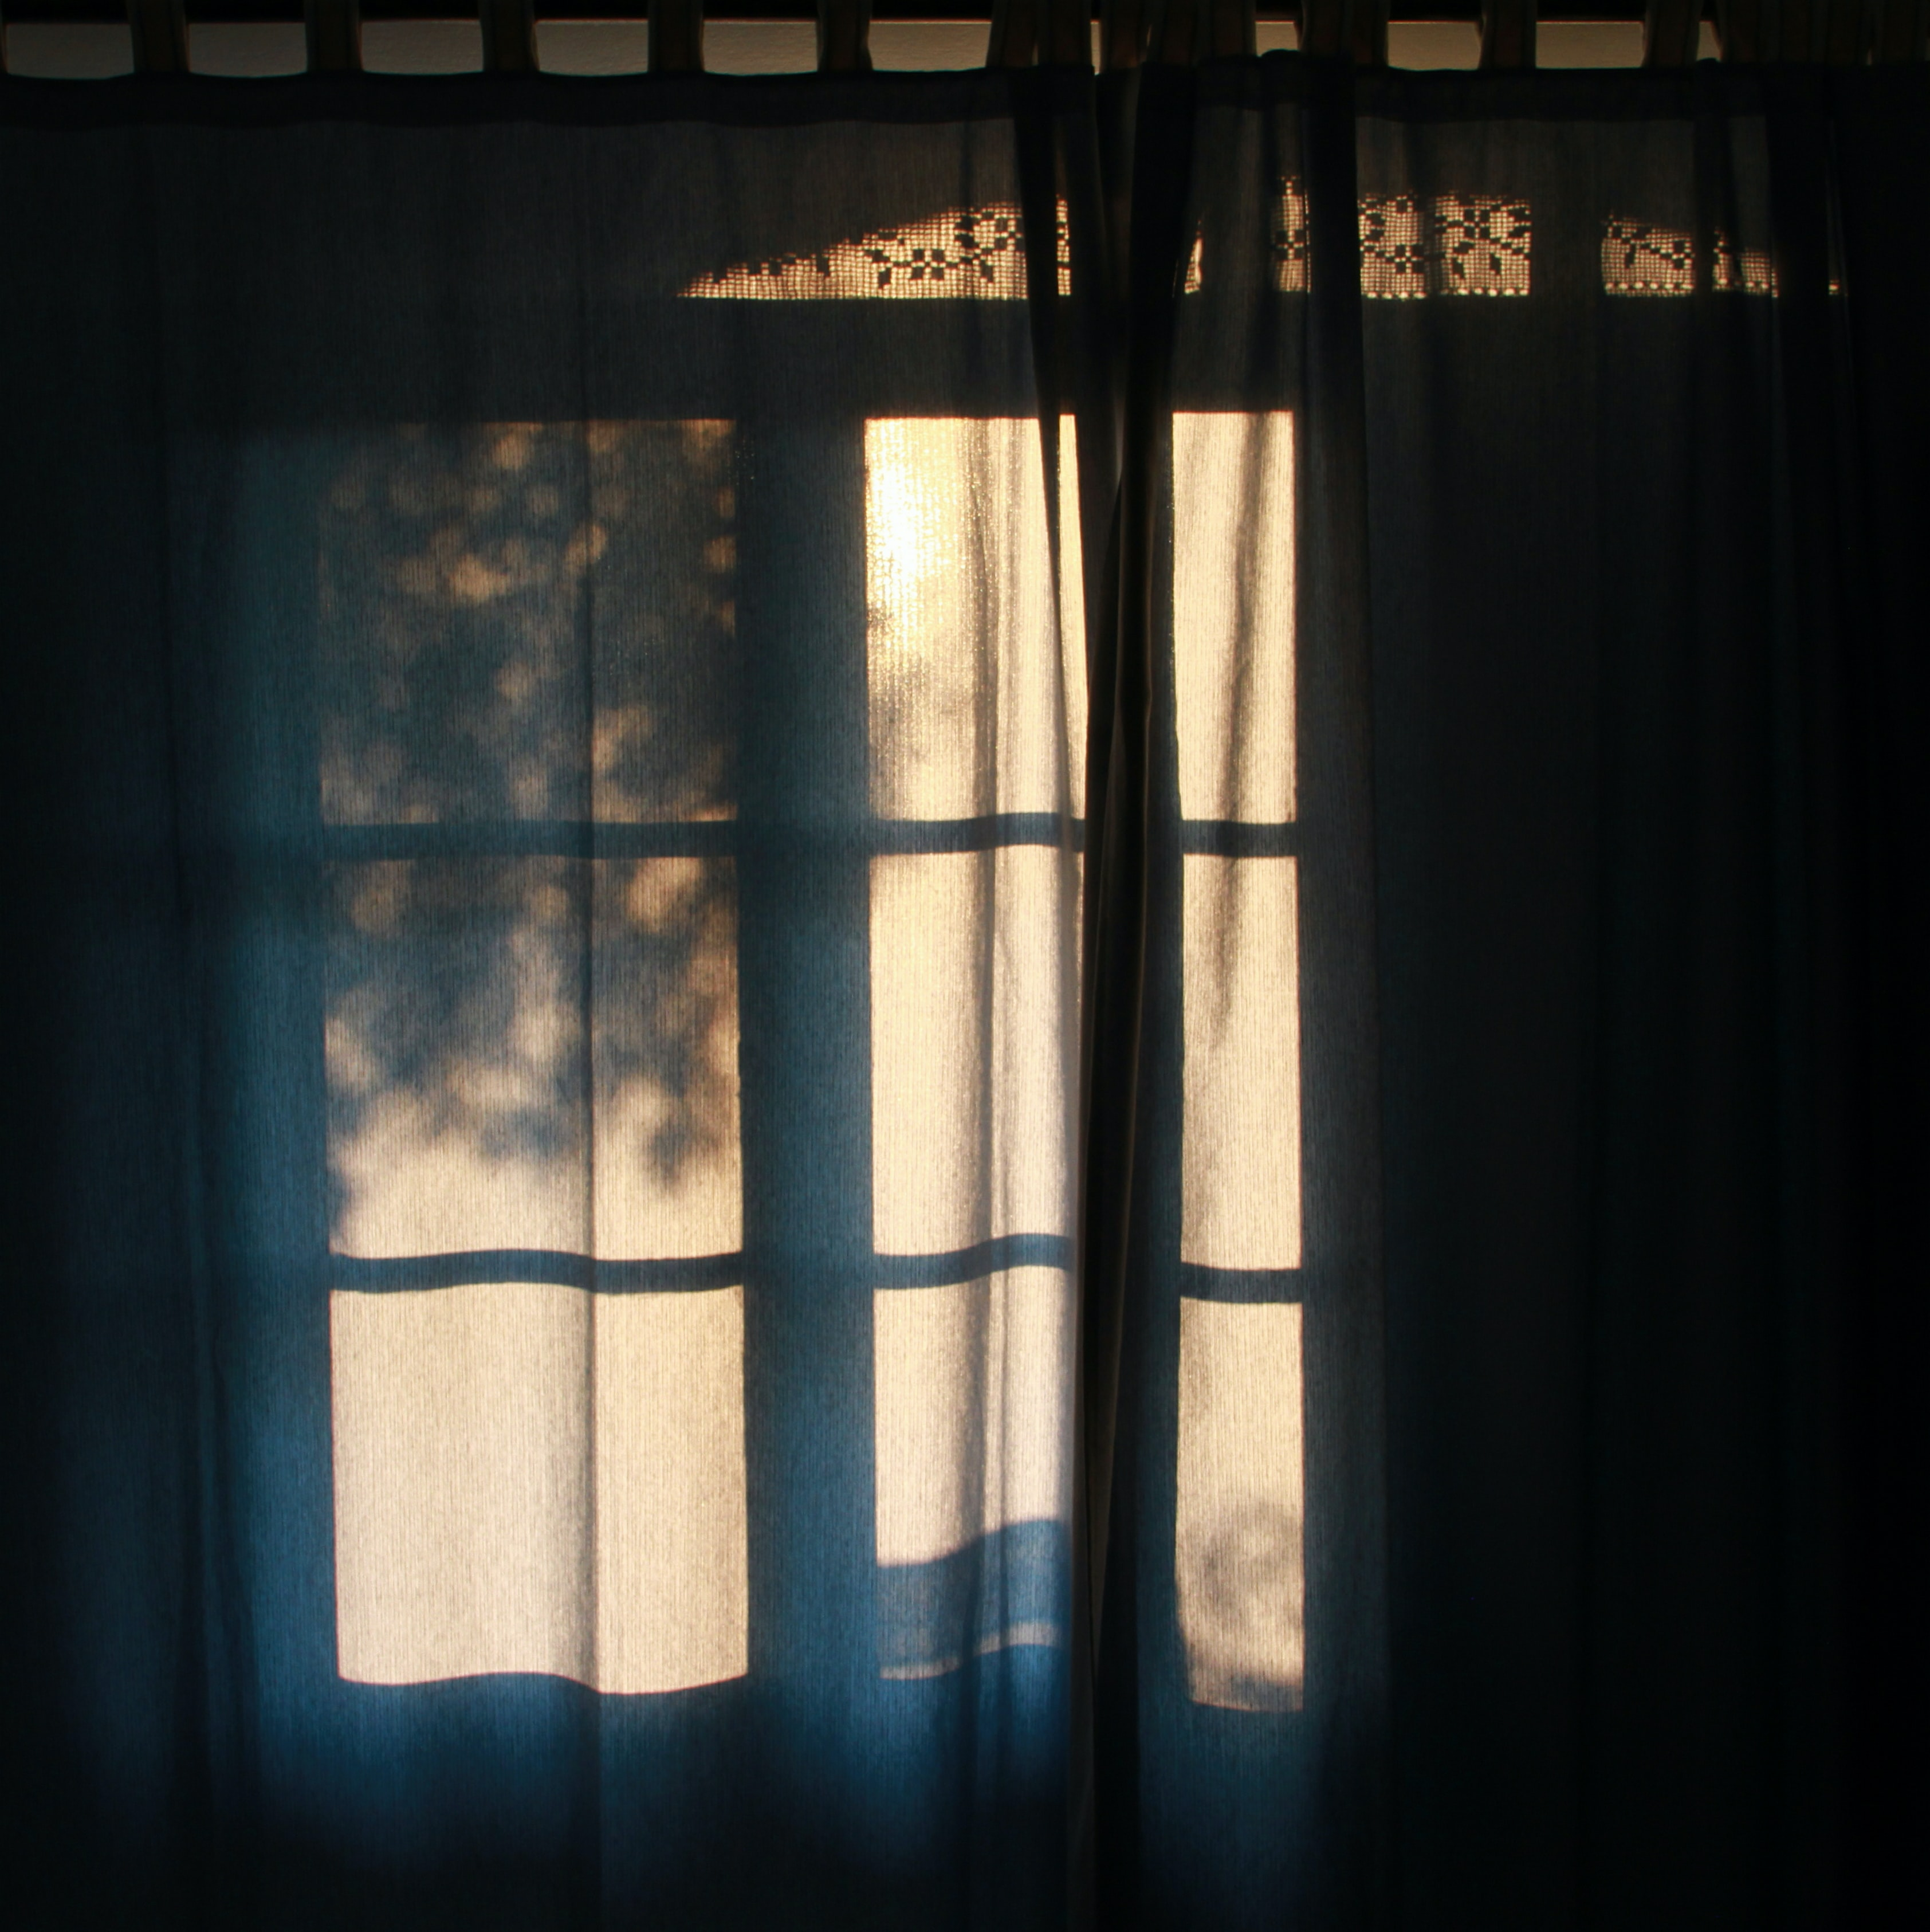 blue curtain in front of window during daytime